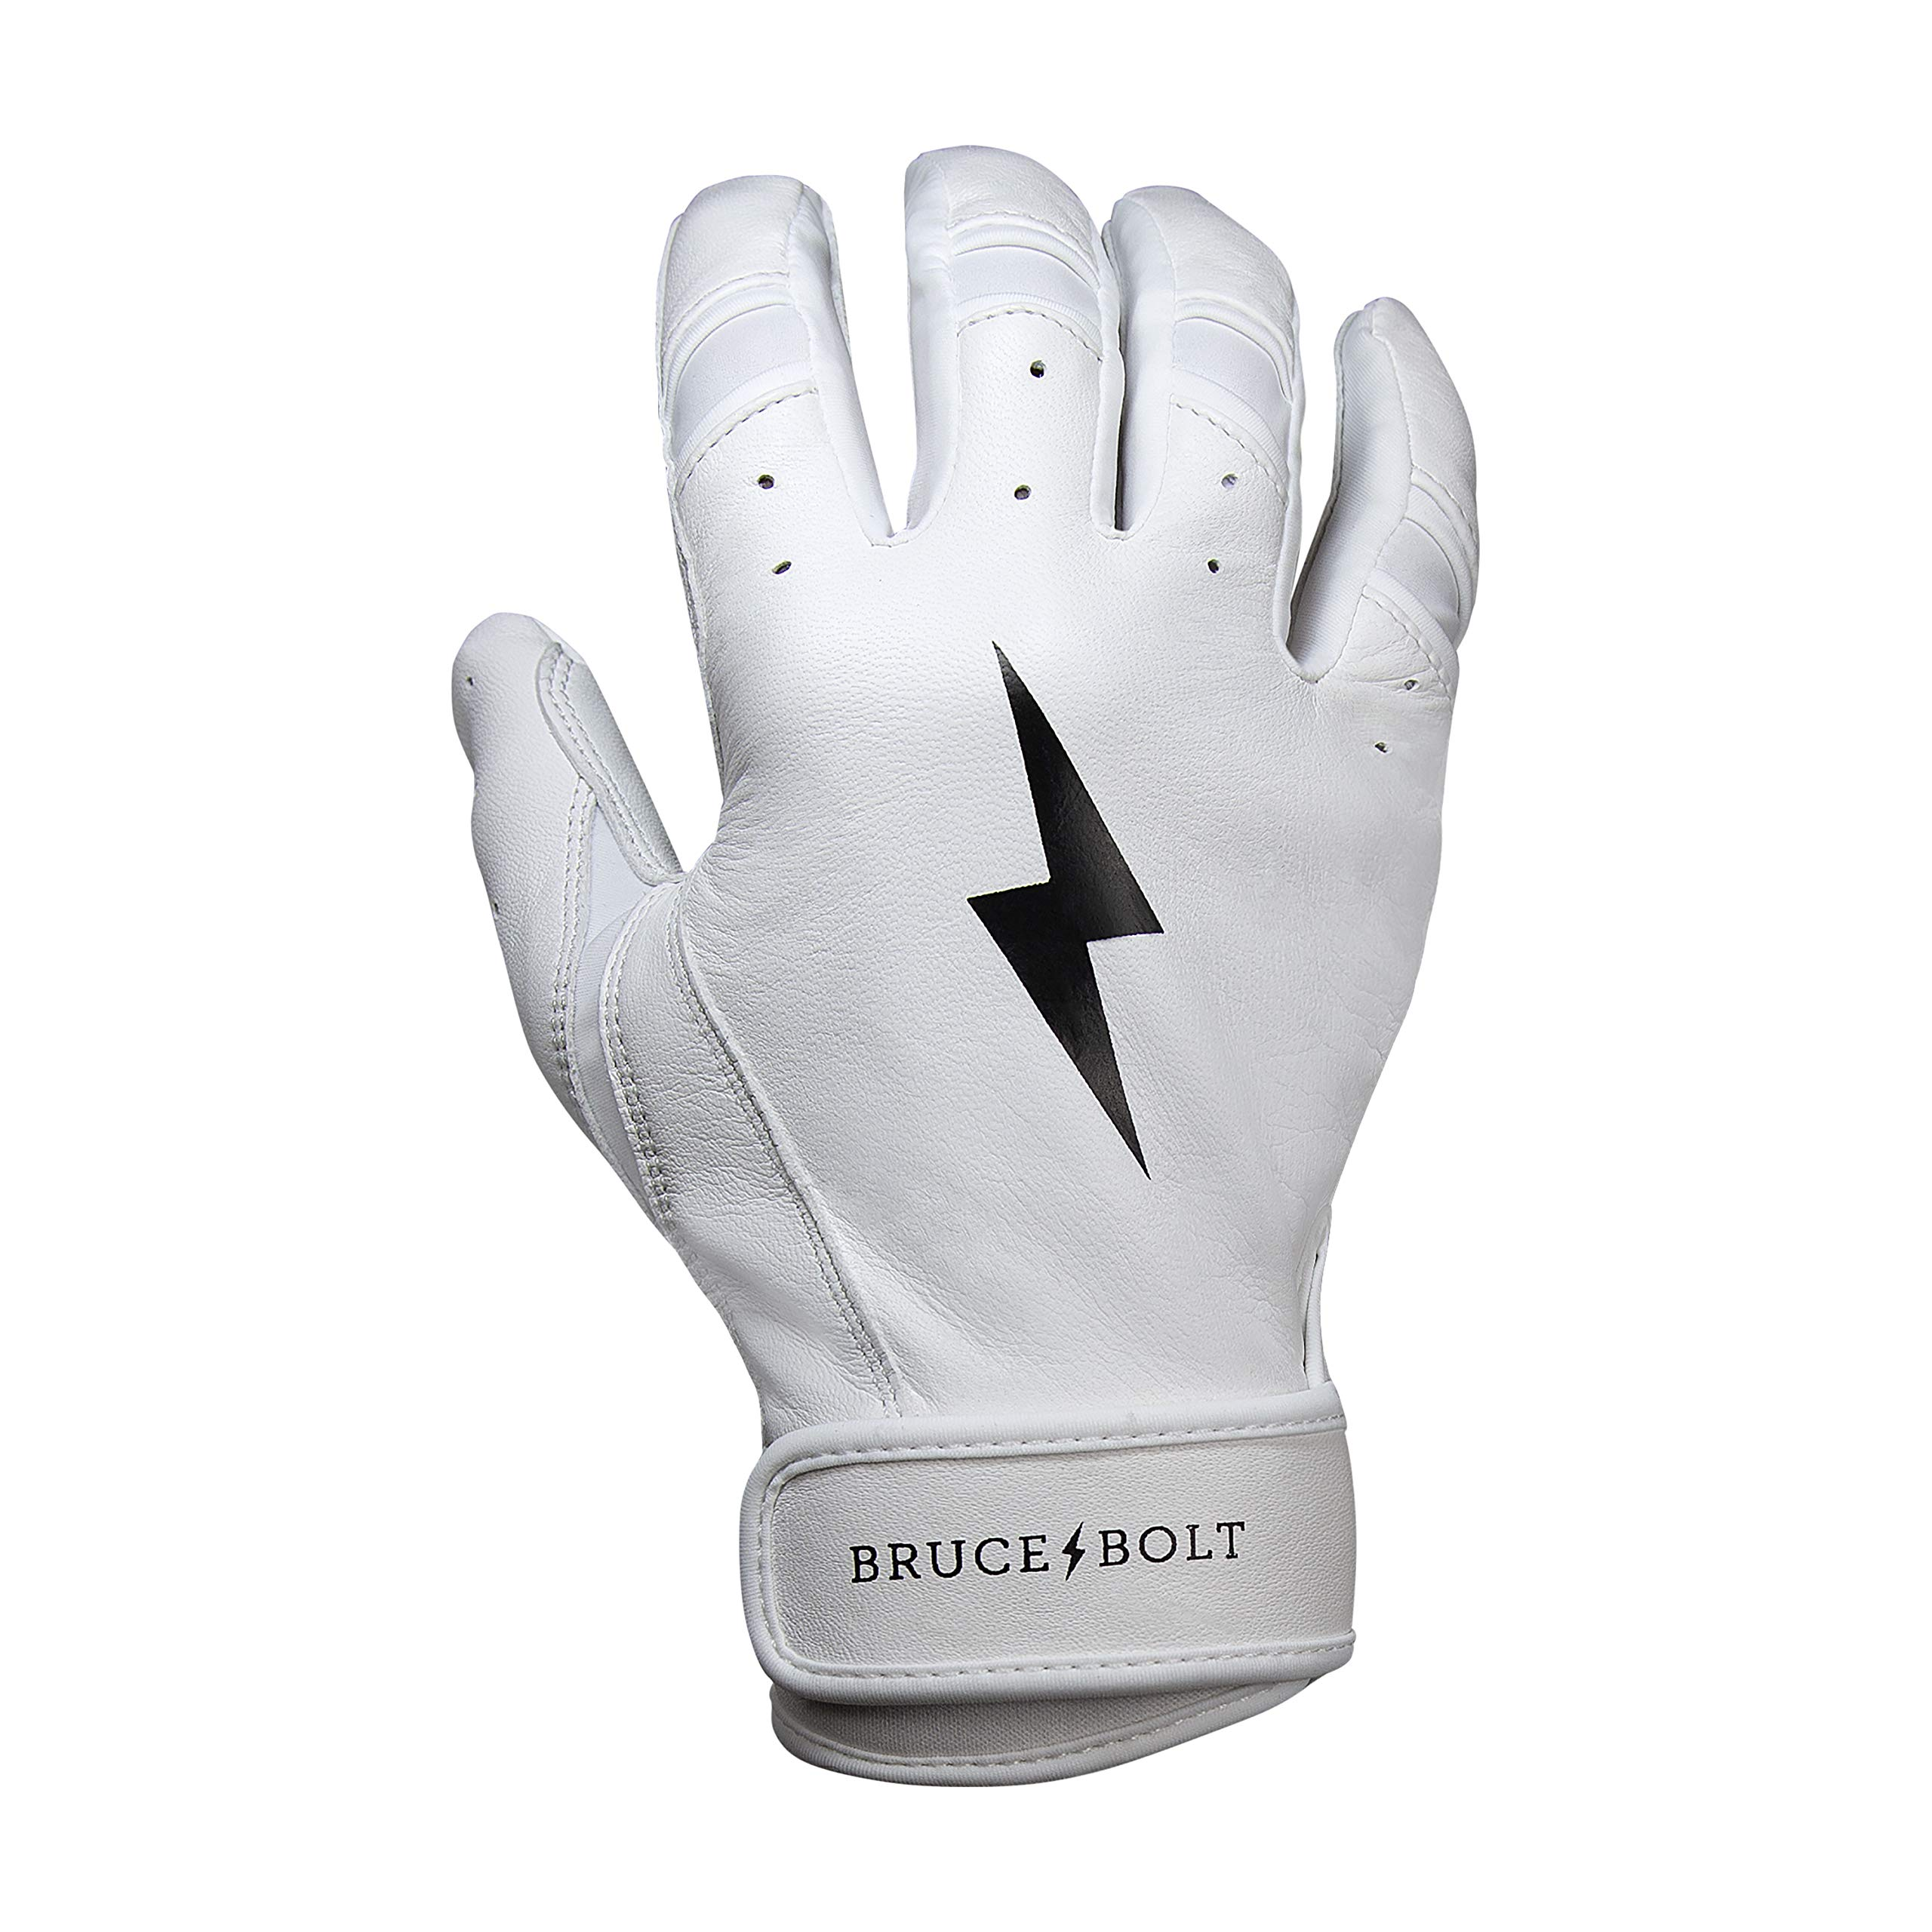 BRUCE+BOLT Premium Short Cuff Batting Gloves - White XLarge SWXL